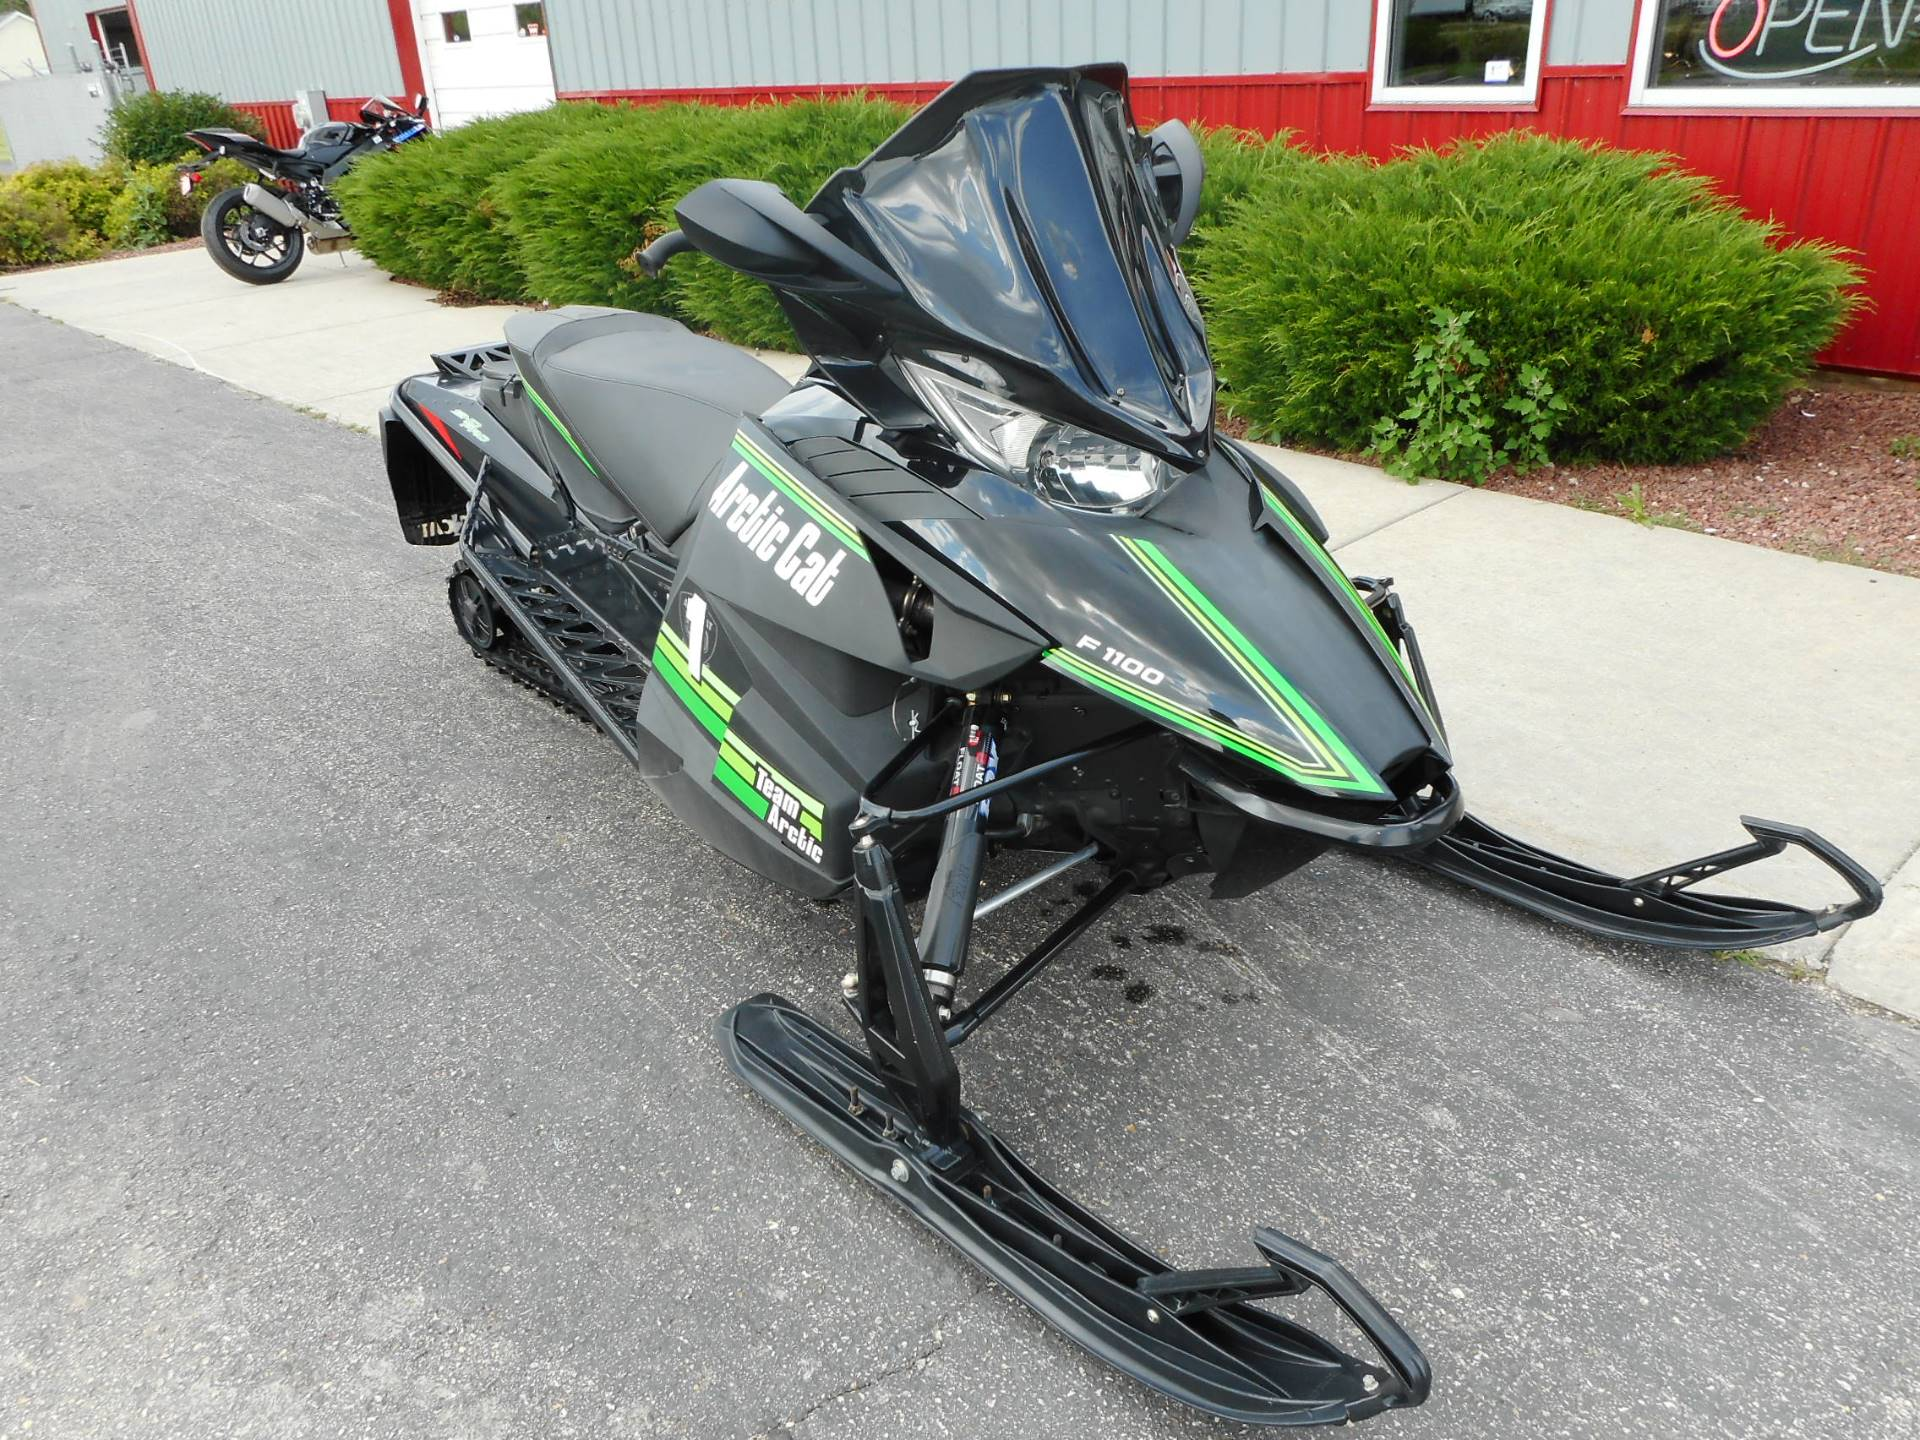 2012 Arctic Cat F 1100 Sno Pro® 50th Anniversary in Janesville, Wisconsin